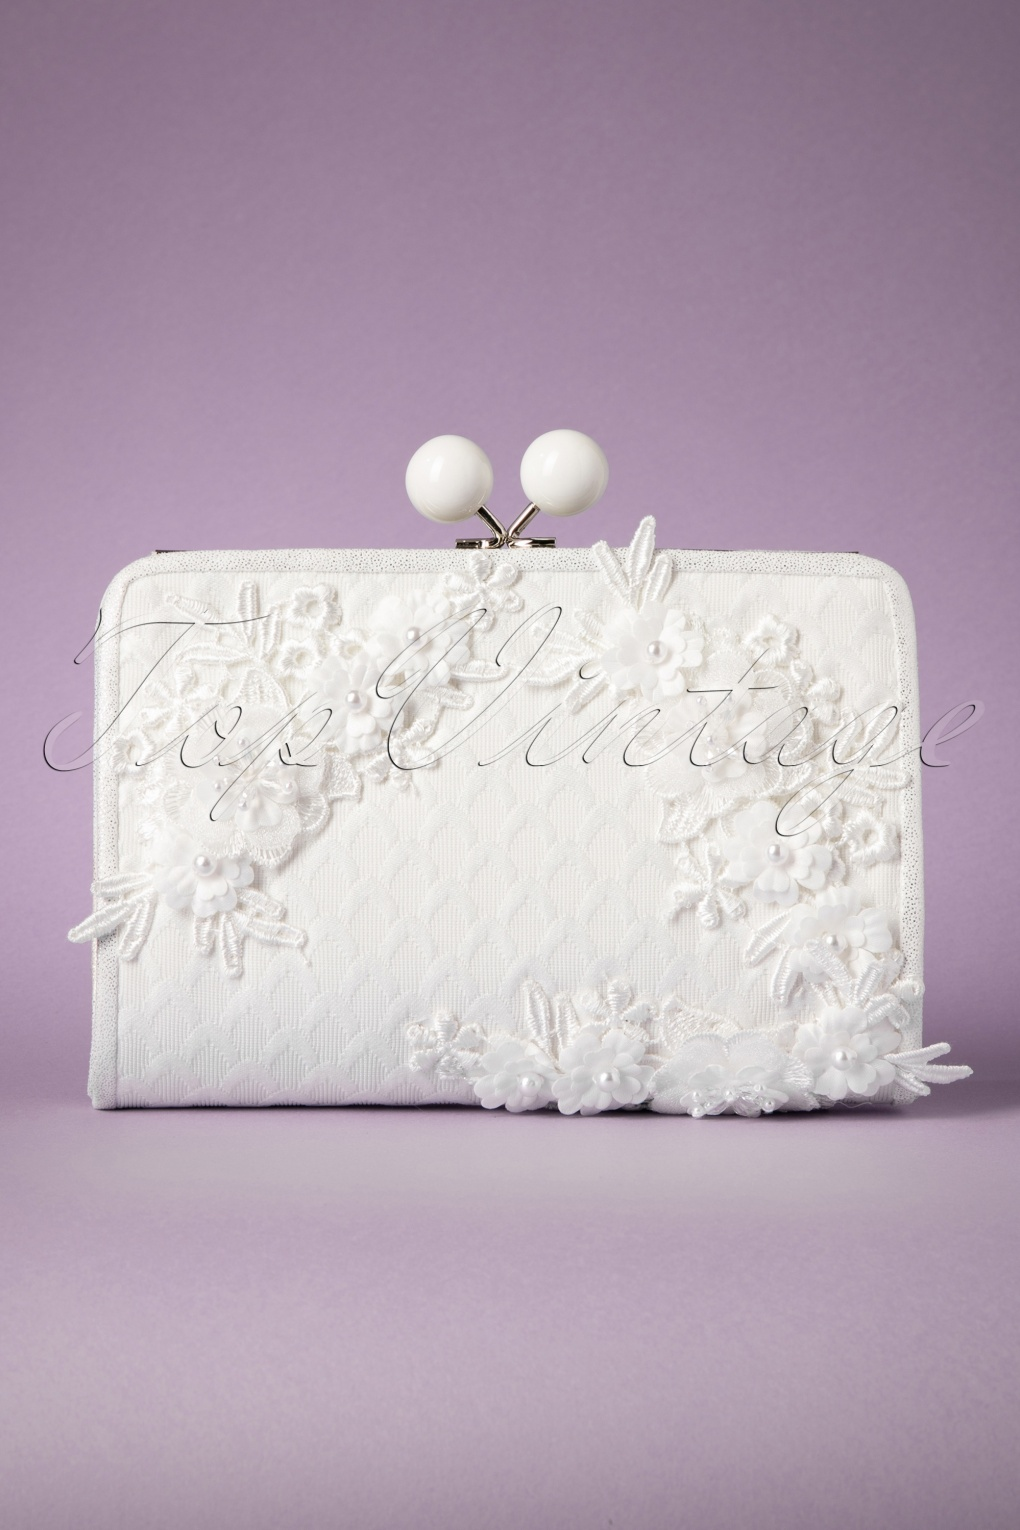 Vintage & Retro Handbags, Purses, Wallets, Bags 50s Riga Flowers and Pearls Clutch in Ivory £59.45 AT vintagedancer.com